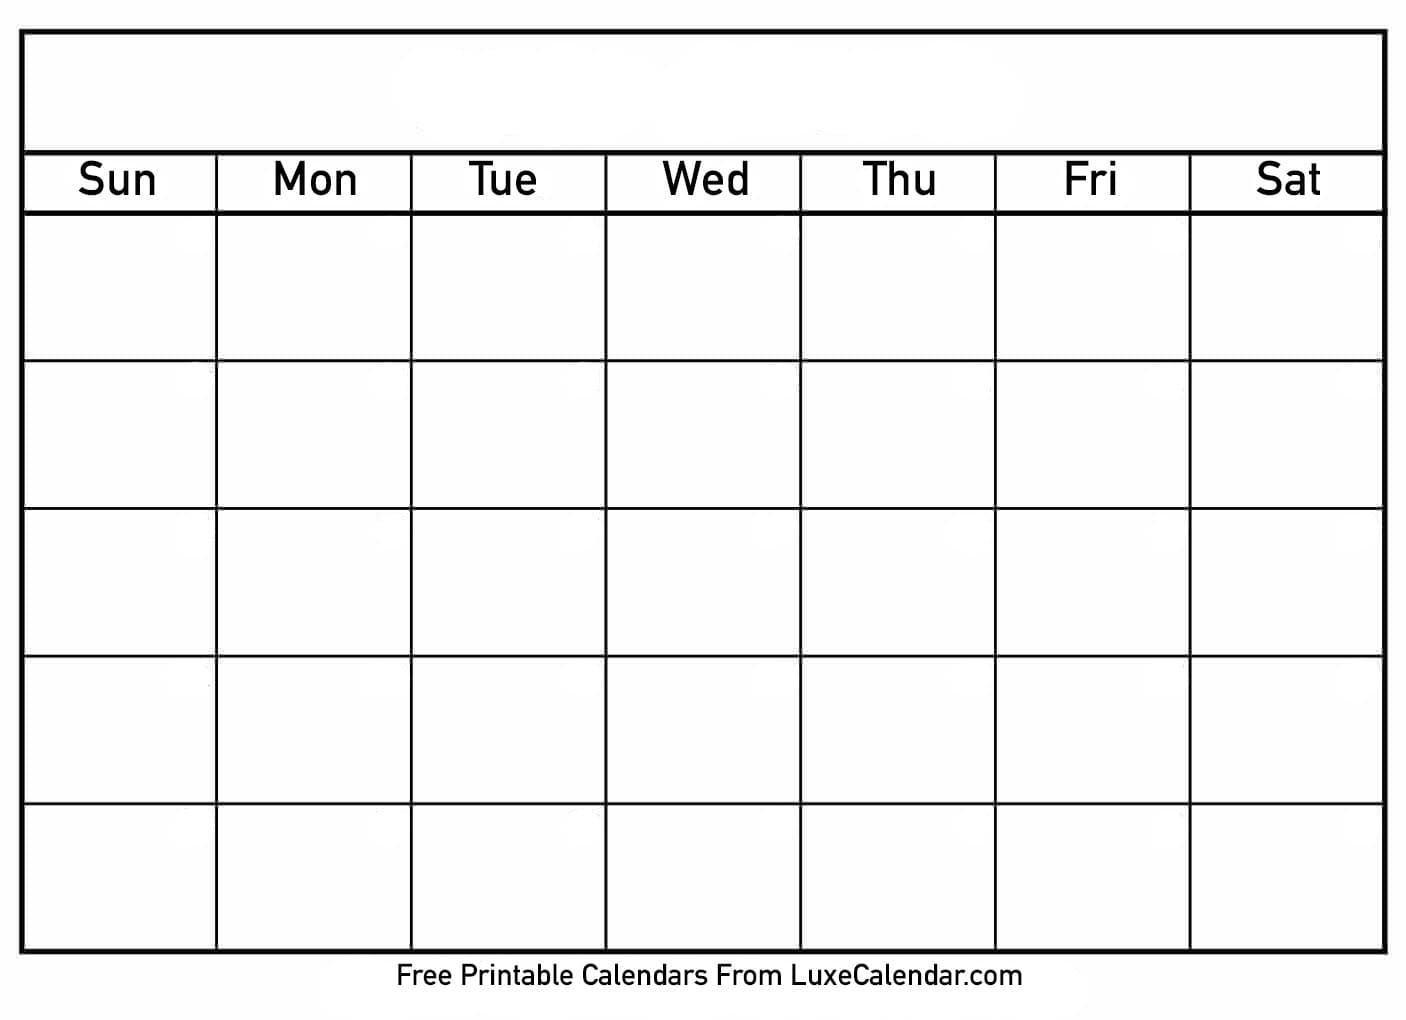 Blank Printable Calendar - Luxe Calendar inside Free Printable Blank Calendars To Fill In